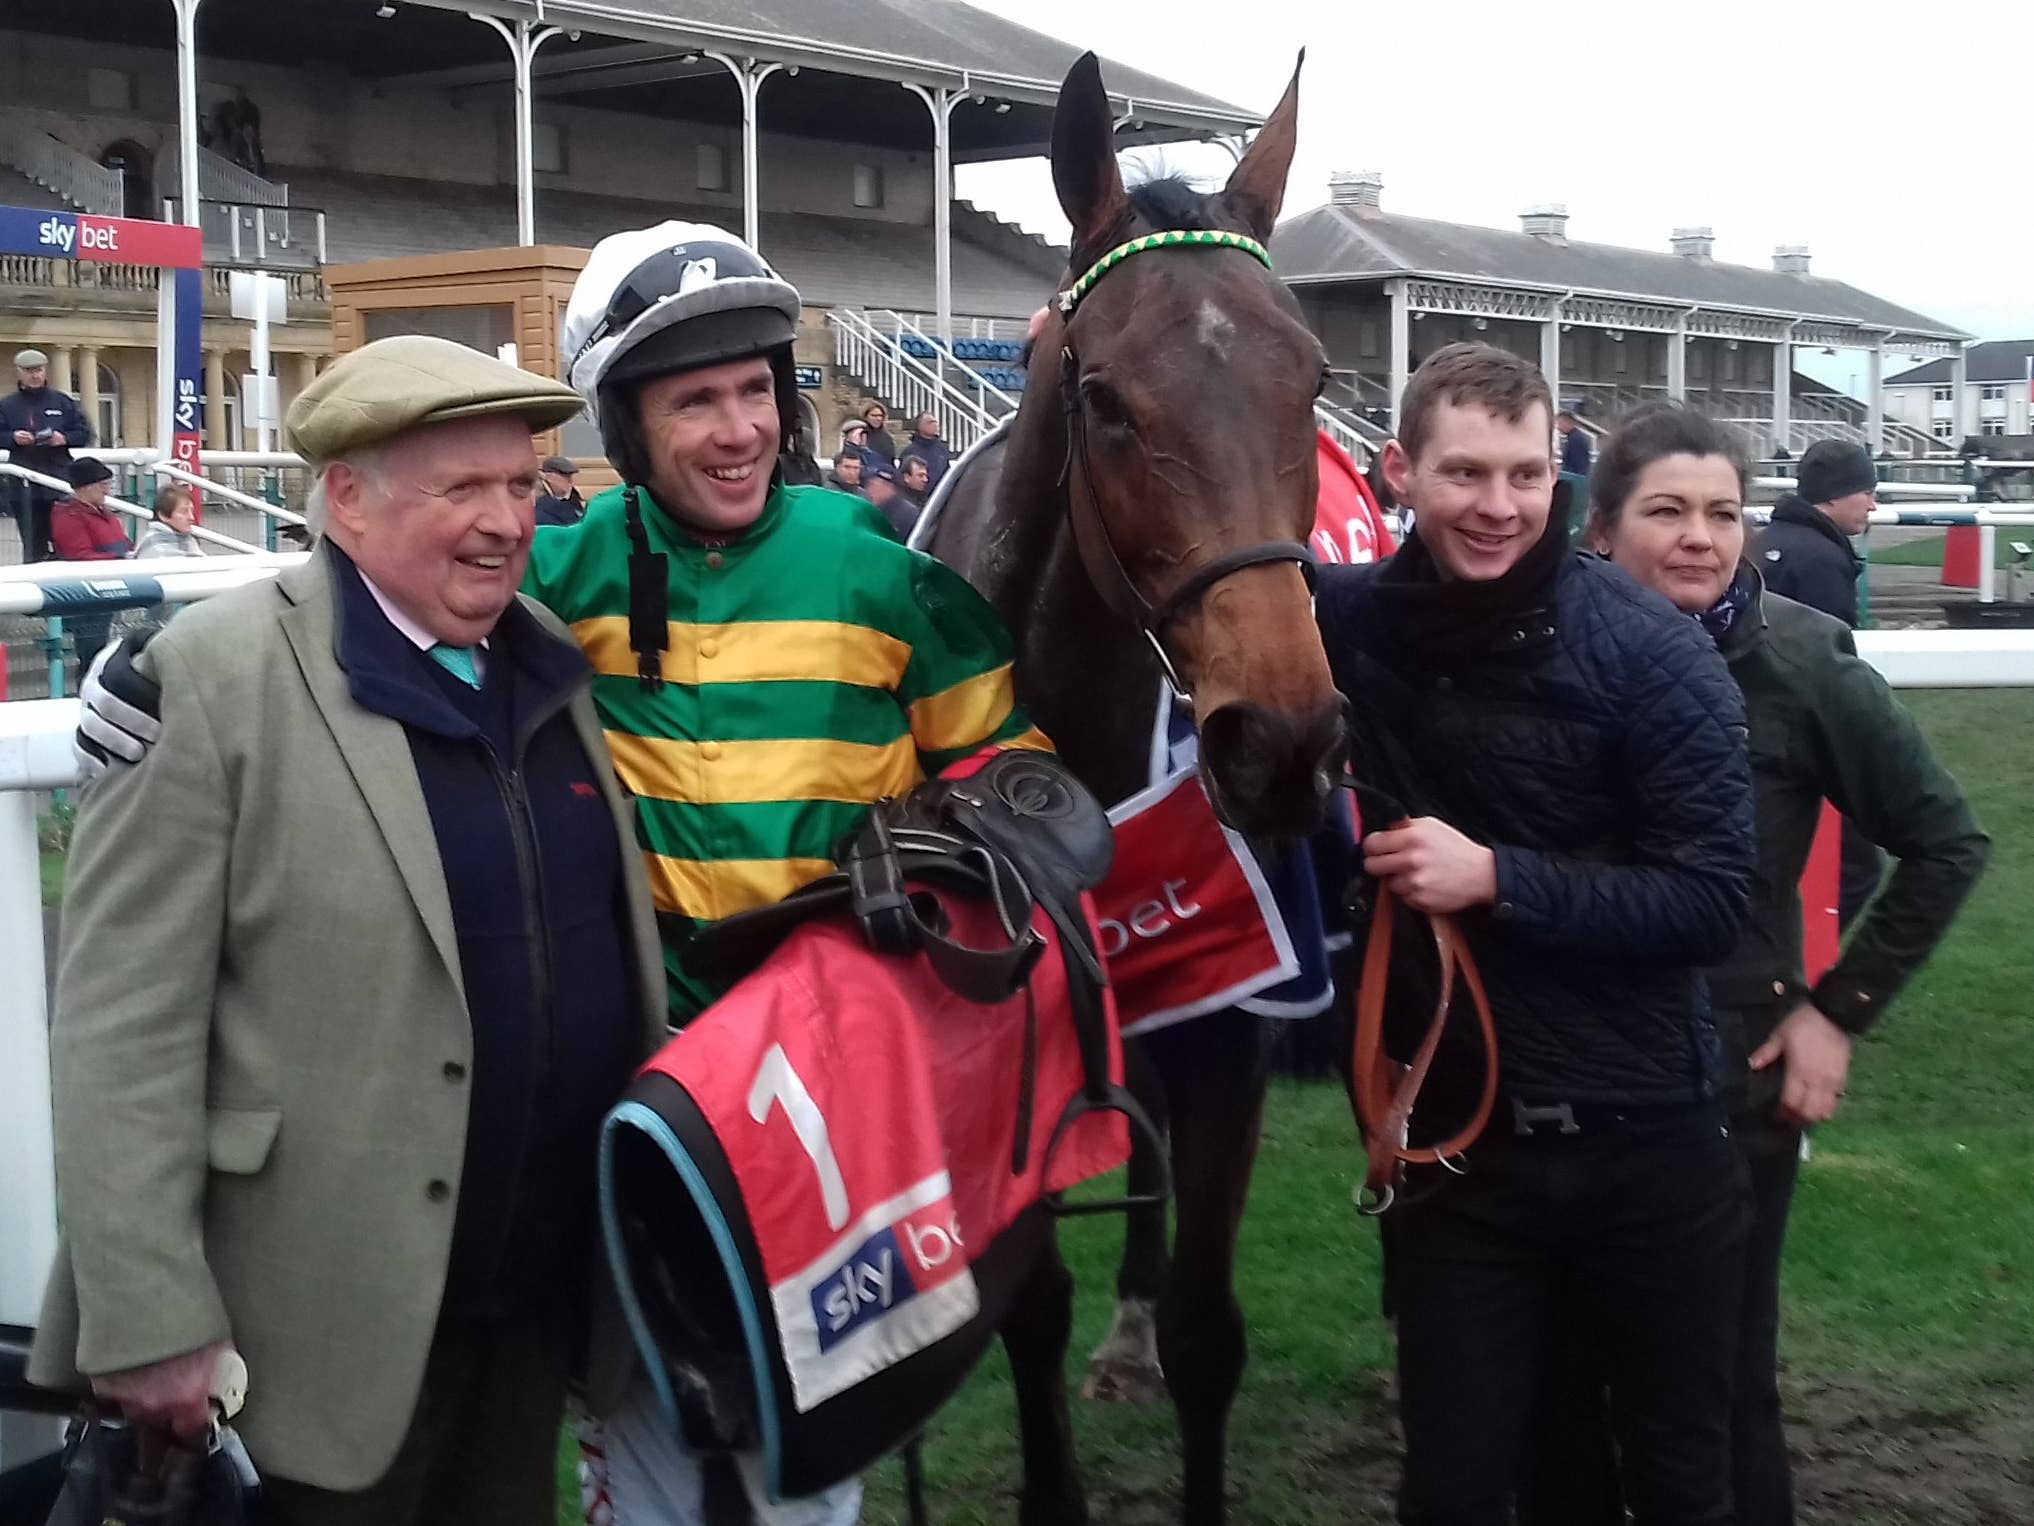 Derek O'Connor poses with OK Corral and team after his Sky Bet Chase win (Keith Hamer/PA)